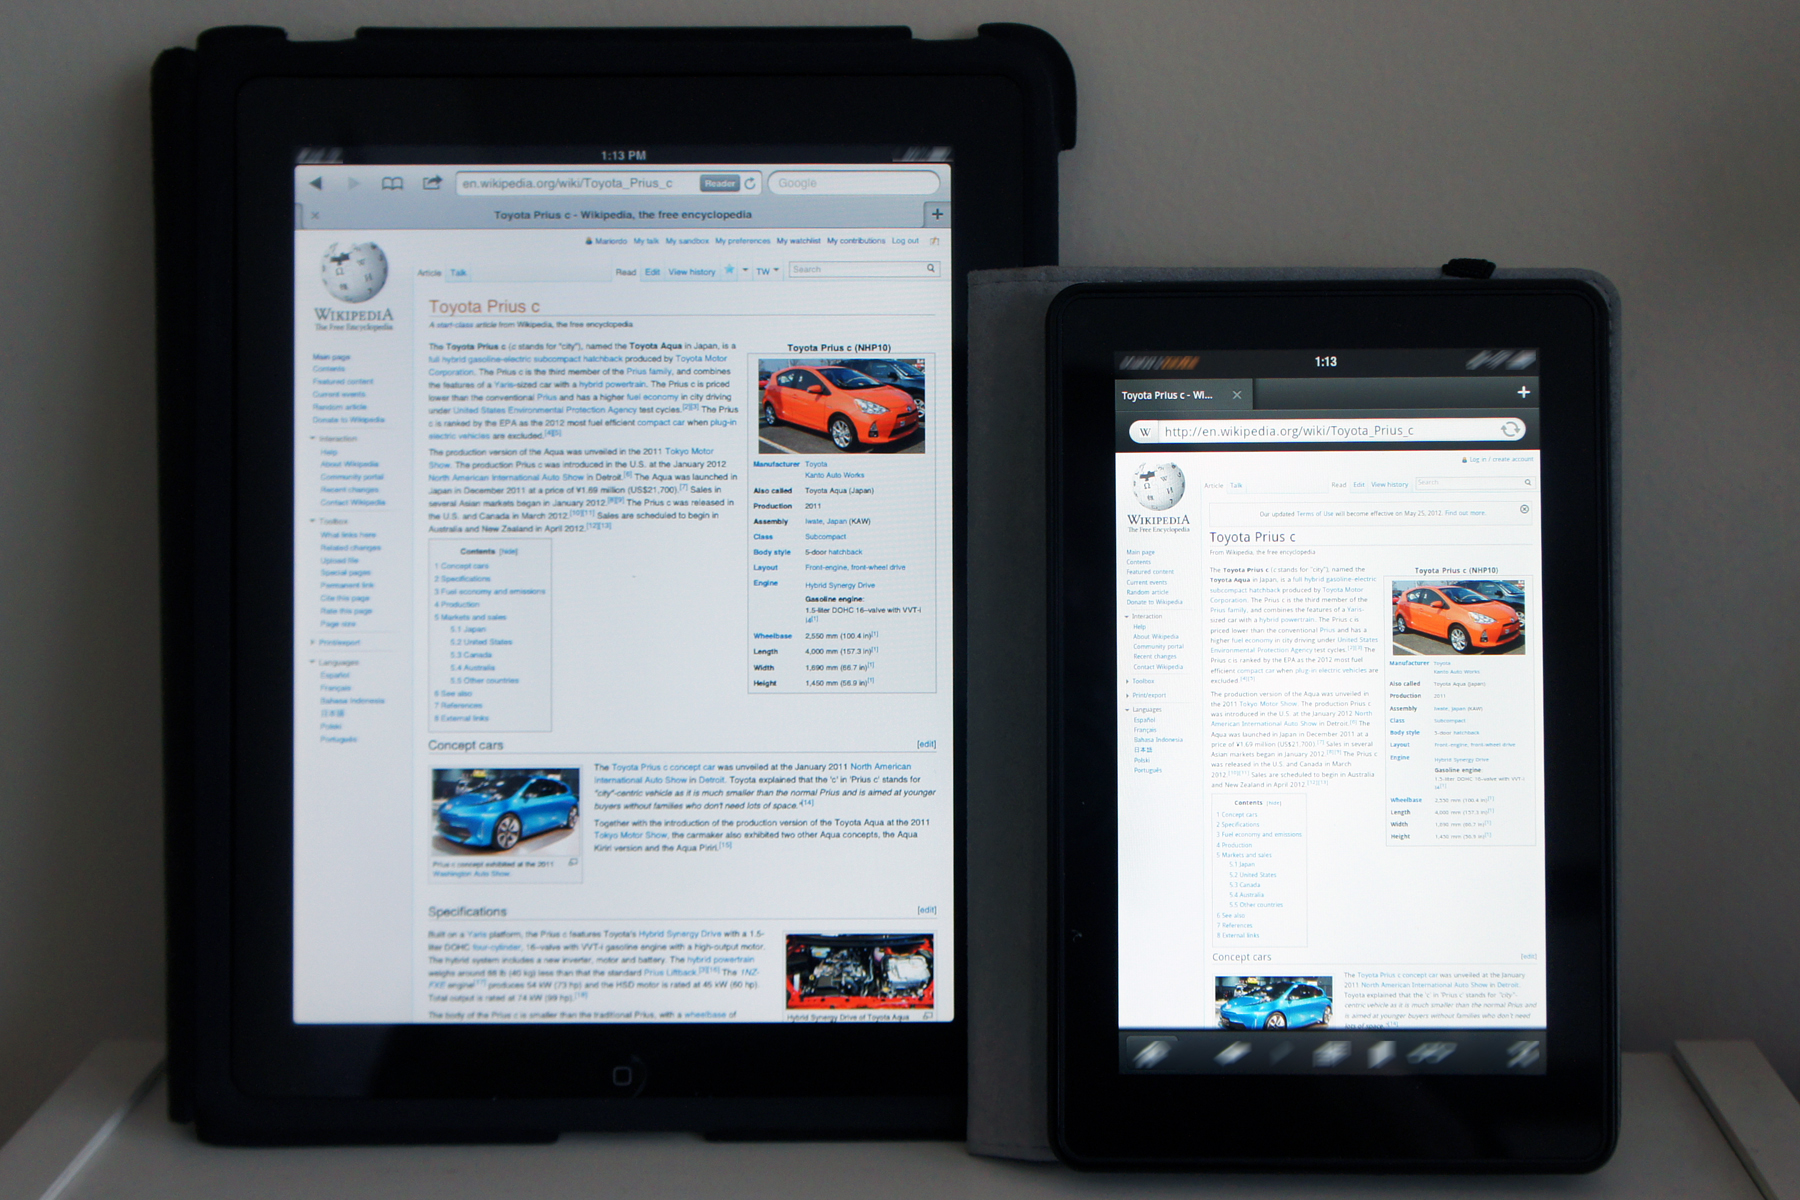 Ipad Comparison Chart: Wikipedia Kindle Fire 6 iPad 1439.JPG - Wikimedia Commons,Chart